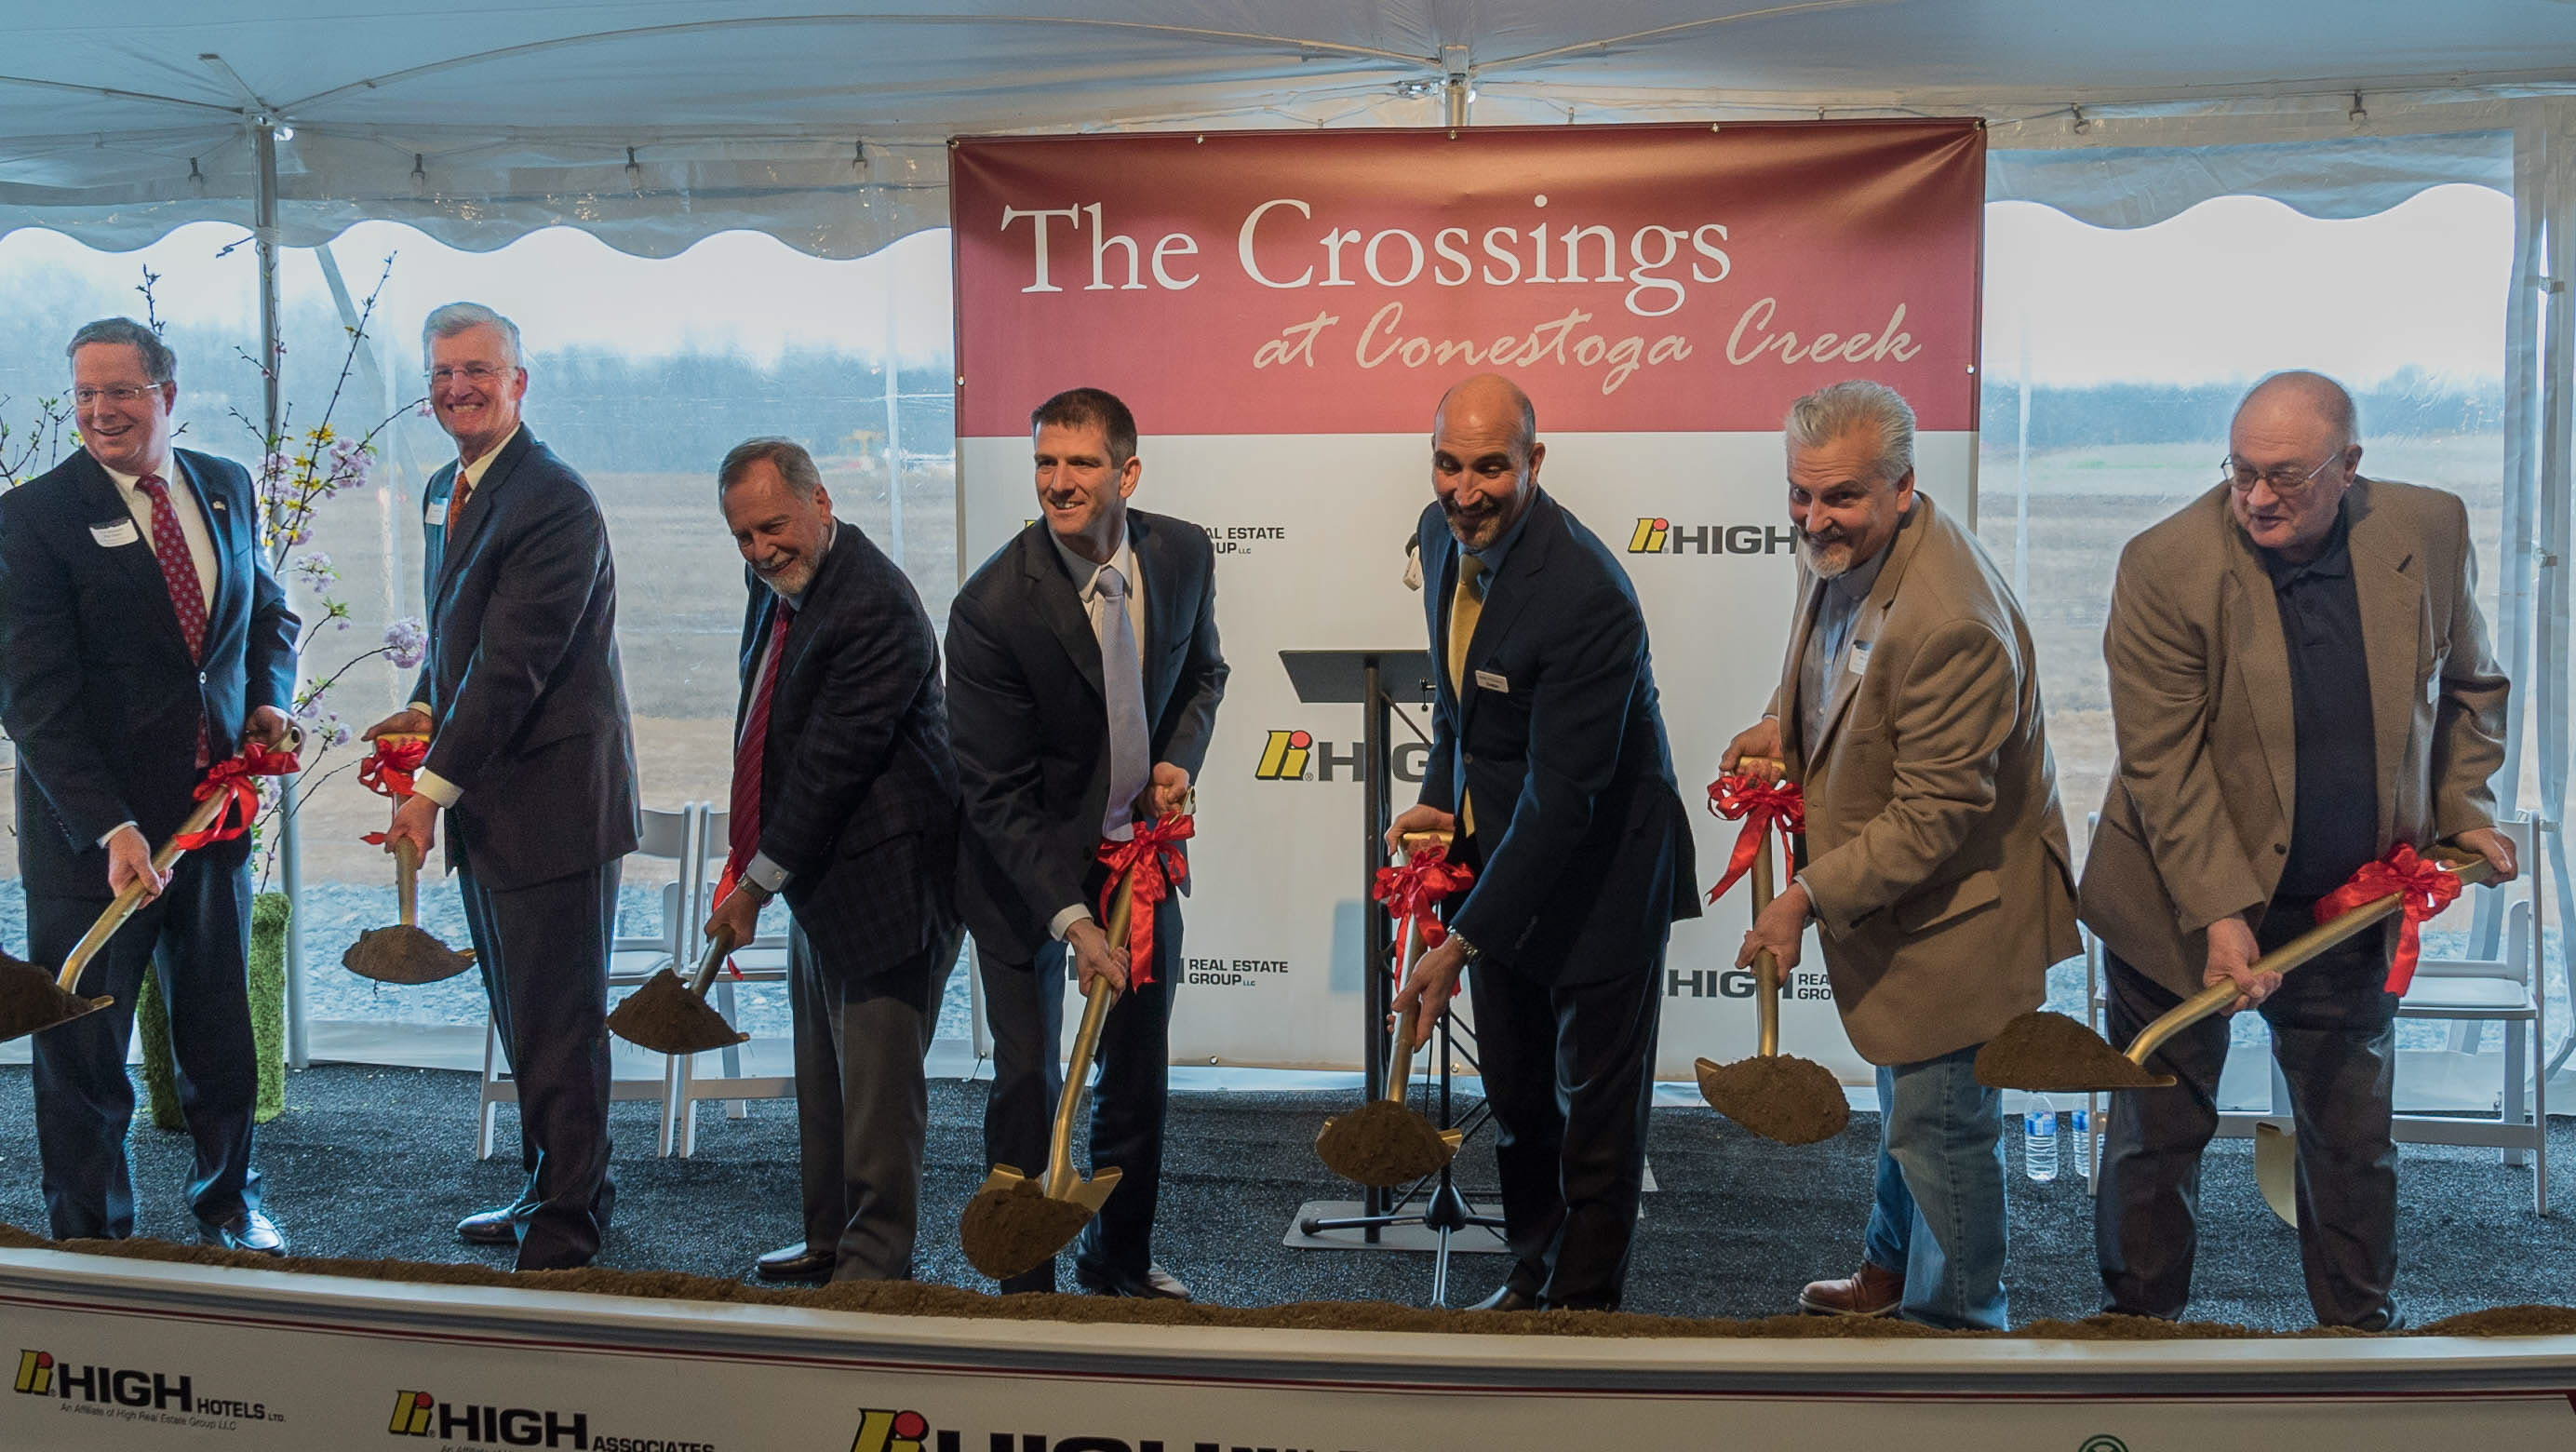 High Real Estate Group broke ground on The Crossings at Conestoga Creek, a mixed use development in Lancaster that will be anchored by Wegmans, opening in 2018.